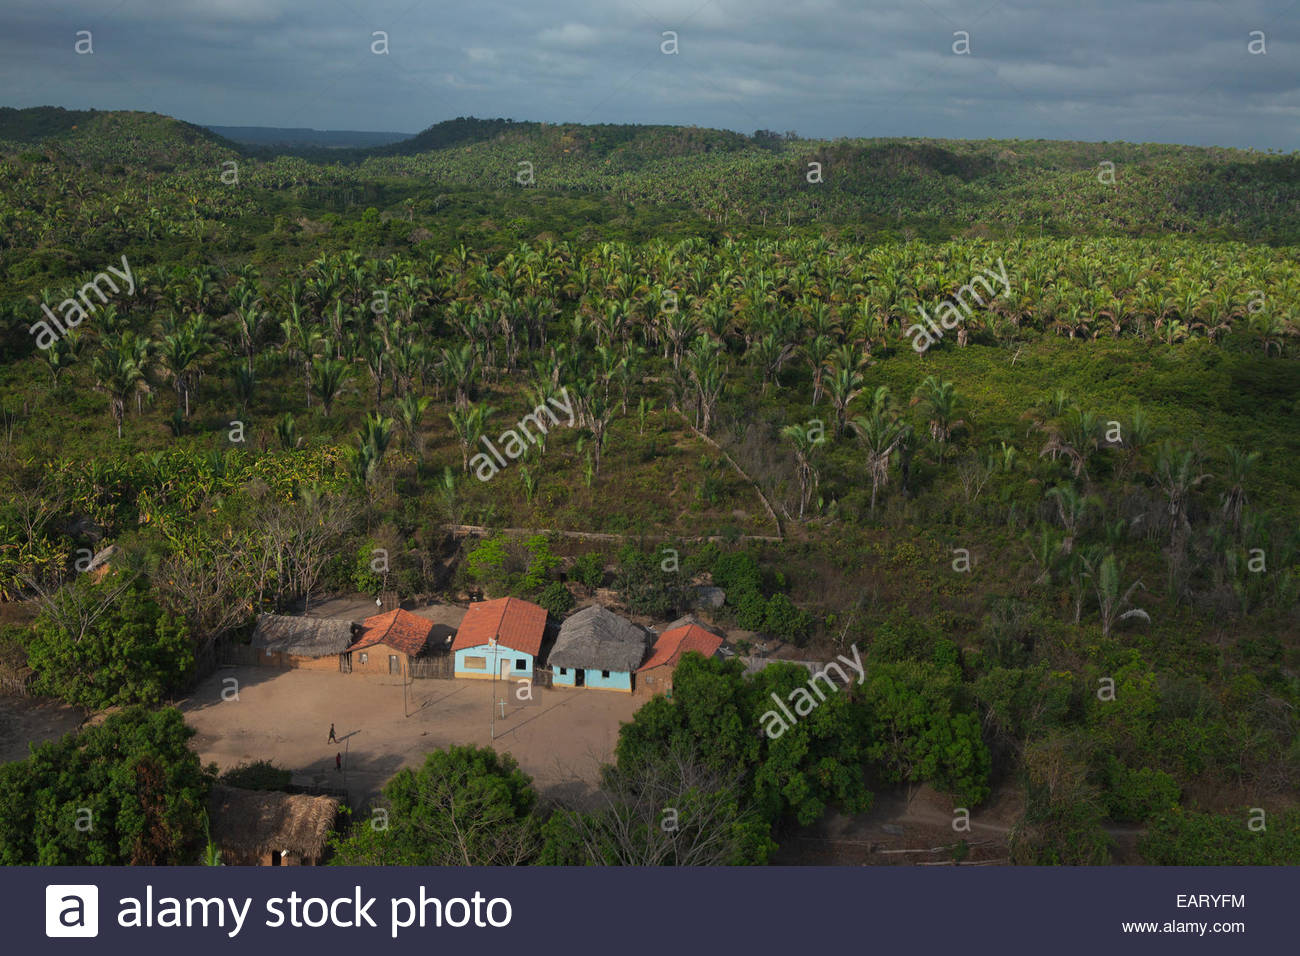 A hundred families harvest a meager living from the palm forests near the village of Santo Antonio dos Pretos. - Stock Image